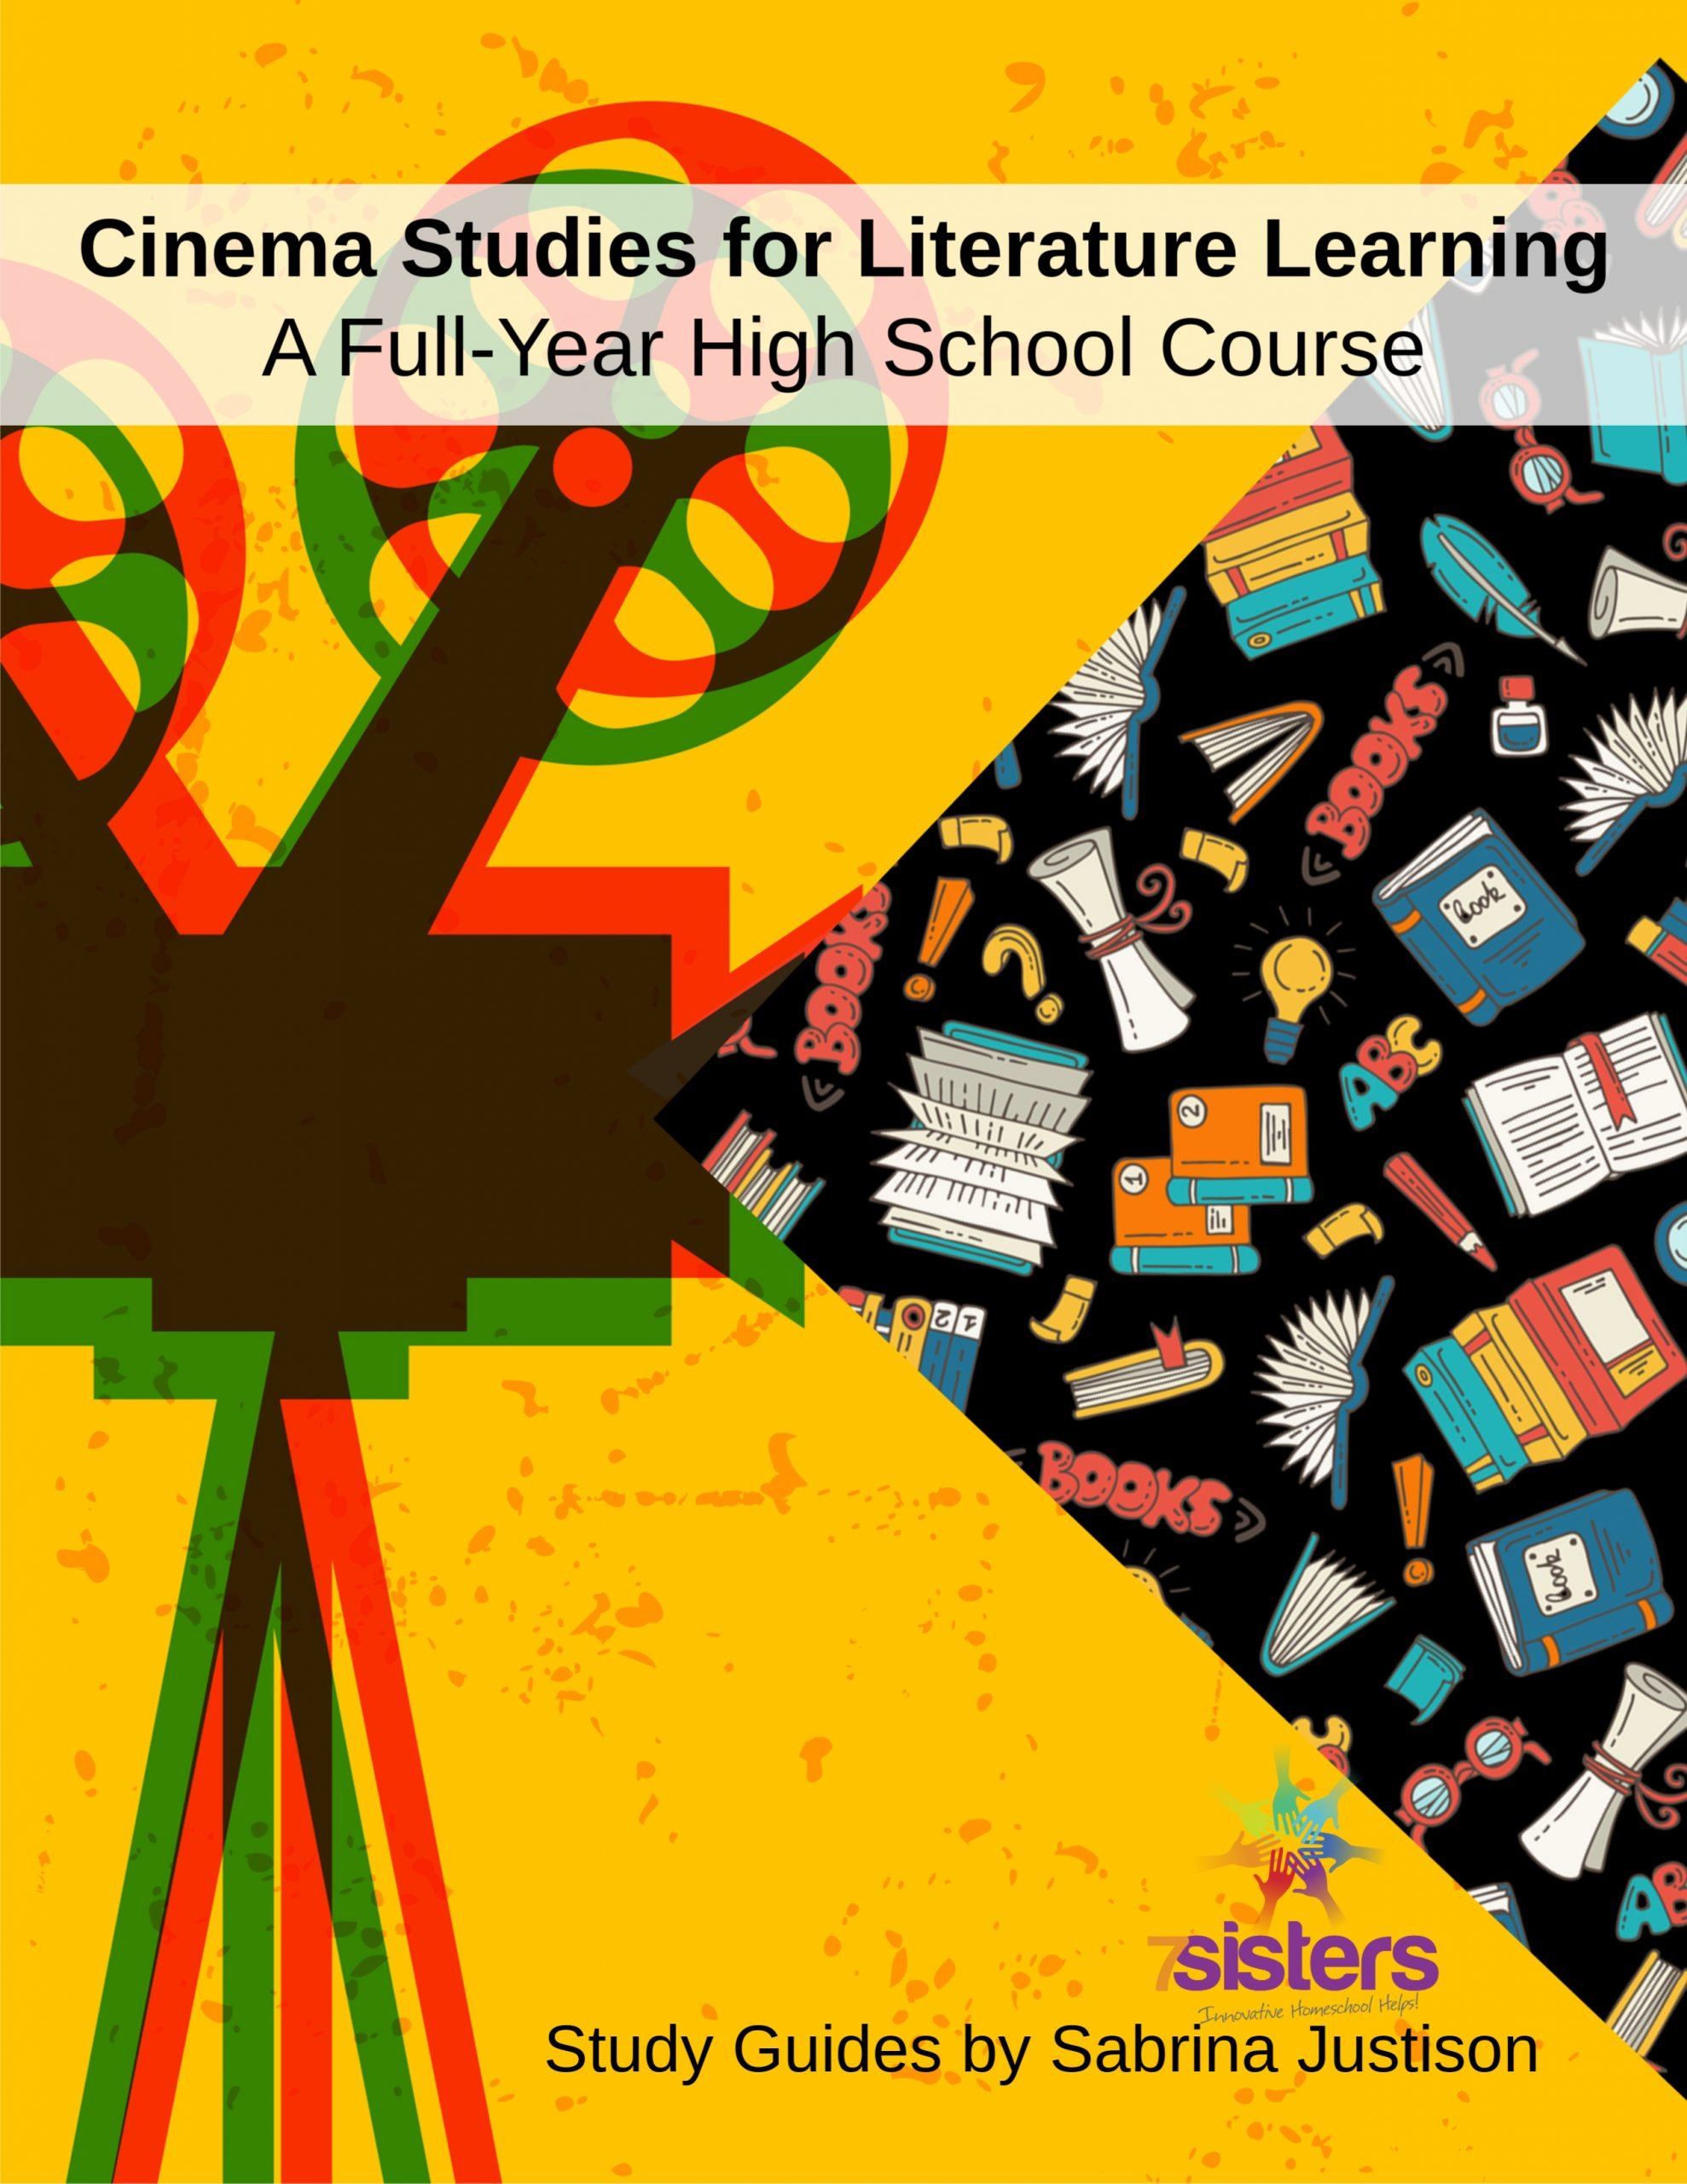 Cinema Studies for Literature Learning: A Full-Year High School Course